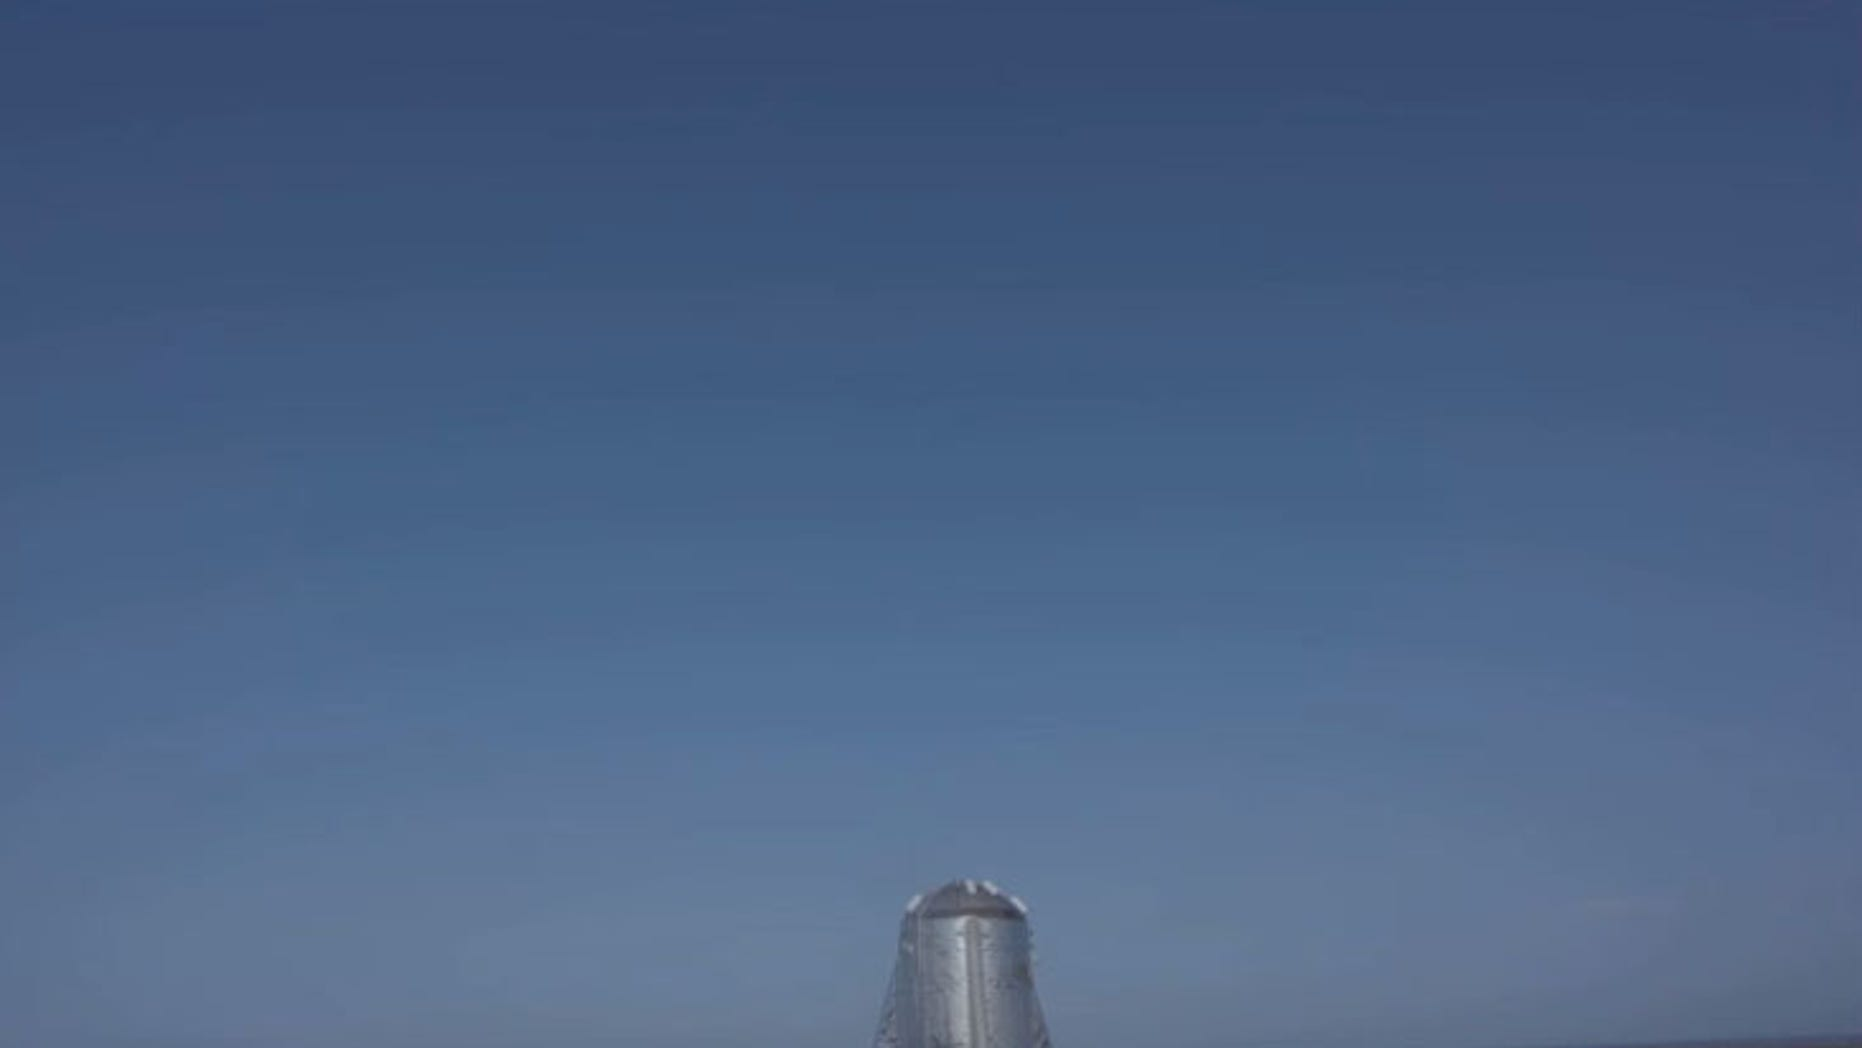 SpaceX's Starhopper prototype is seen just after a launch abort at the company's South Texas test site near Boca Chica Village on Aug. 26, 2019.